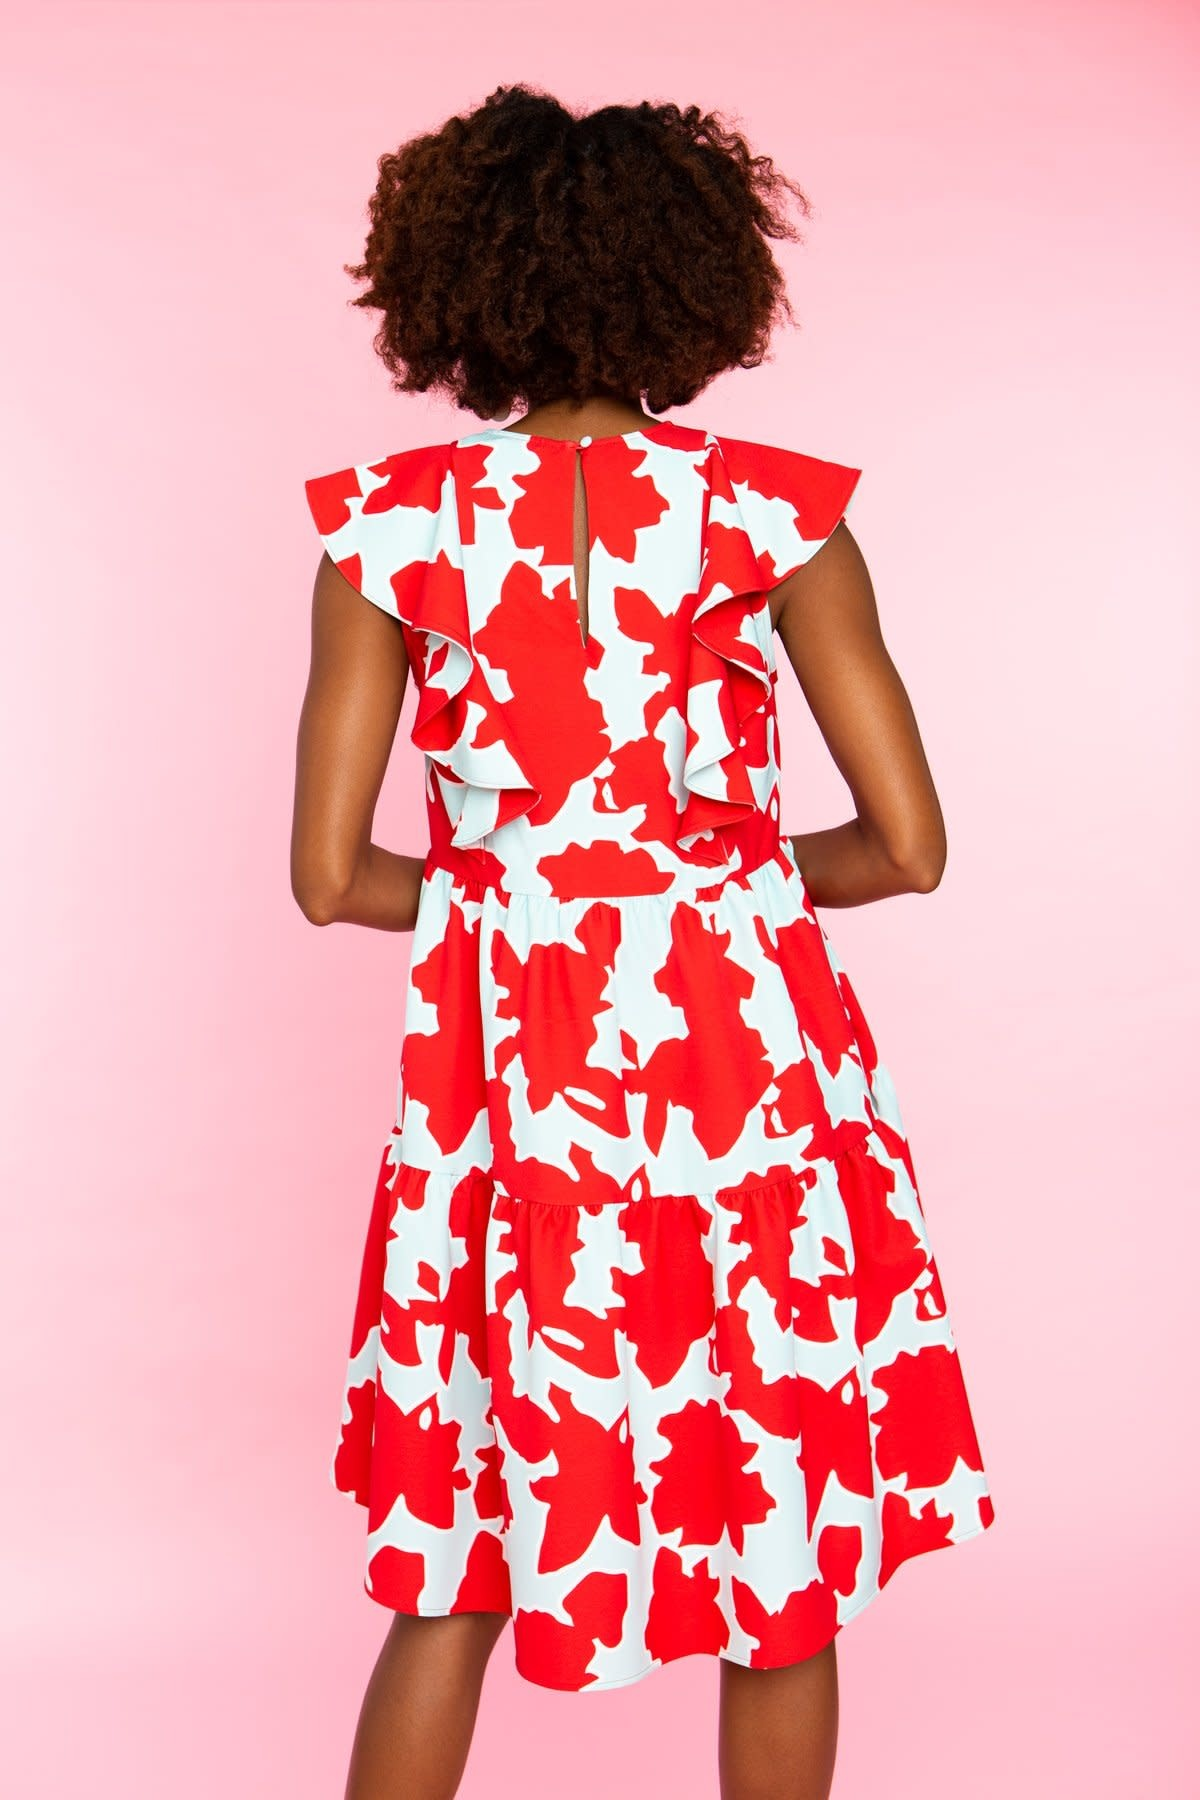 Crosby By Mollie Burch JoeJoe Dress in Azalea Blooms